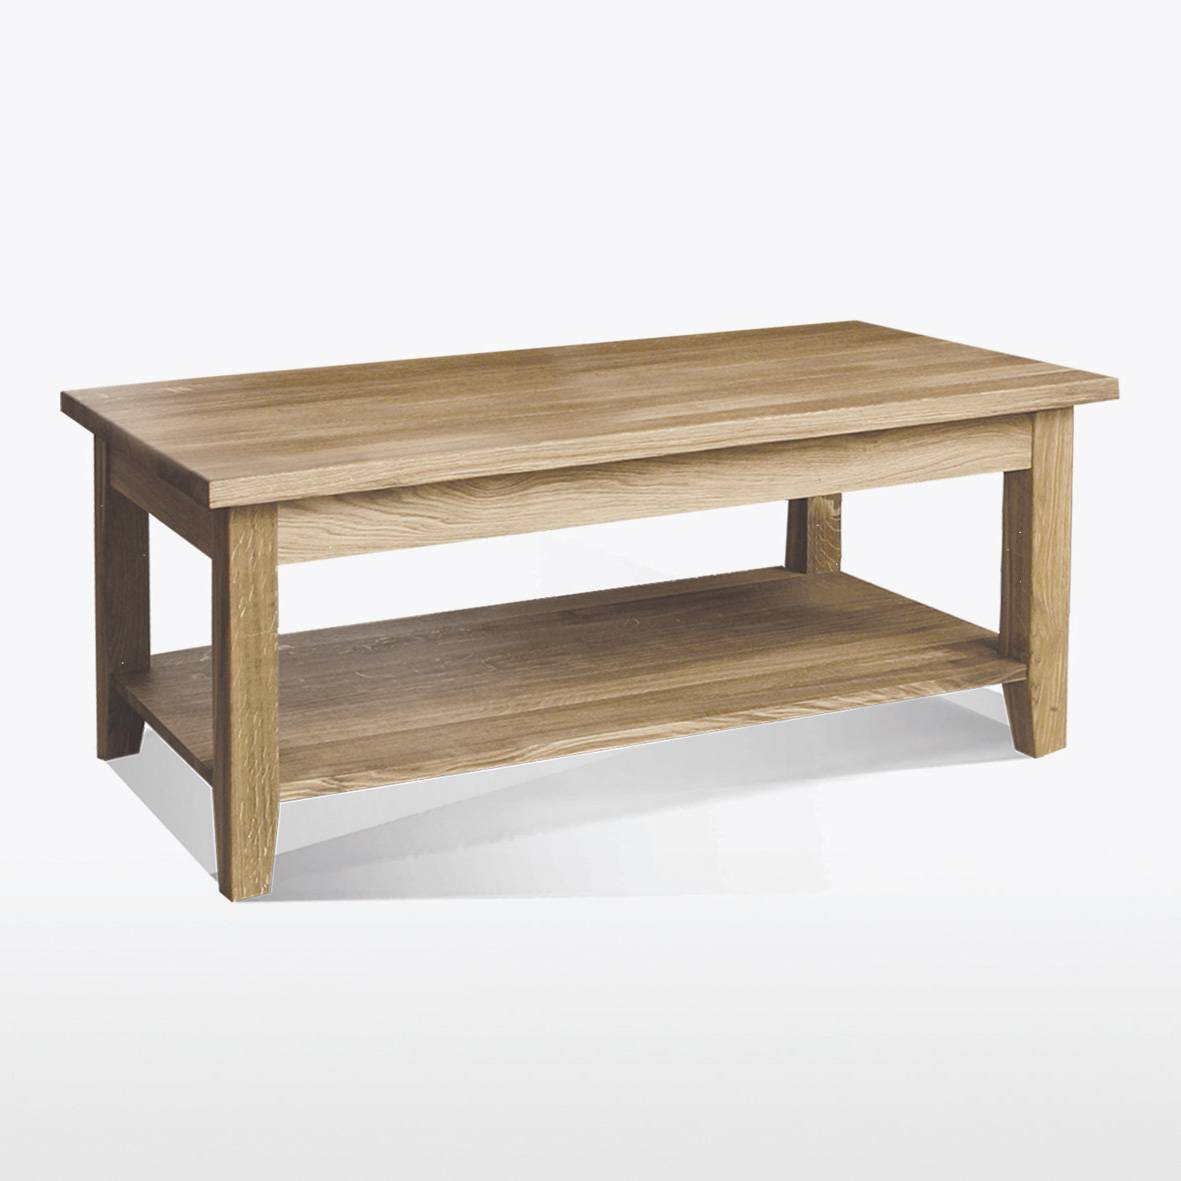 Windsor dining coffee table with shelf w60xl120xh50 for Coffee table with shelf underneath